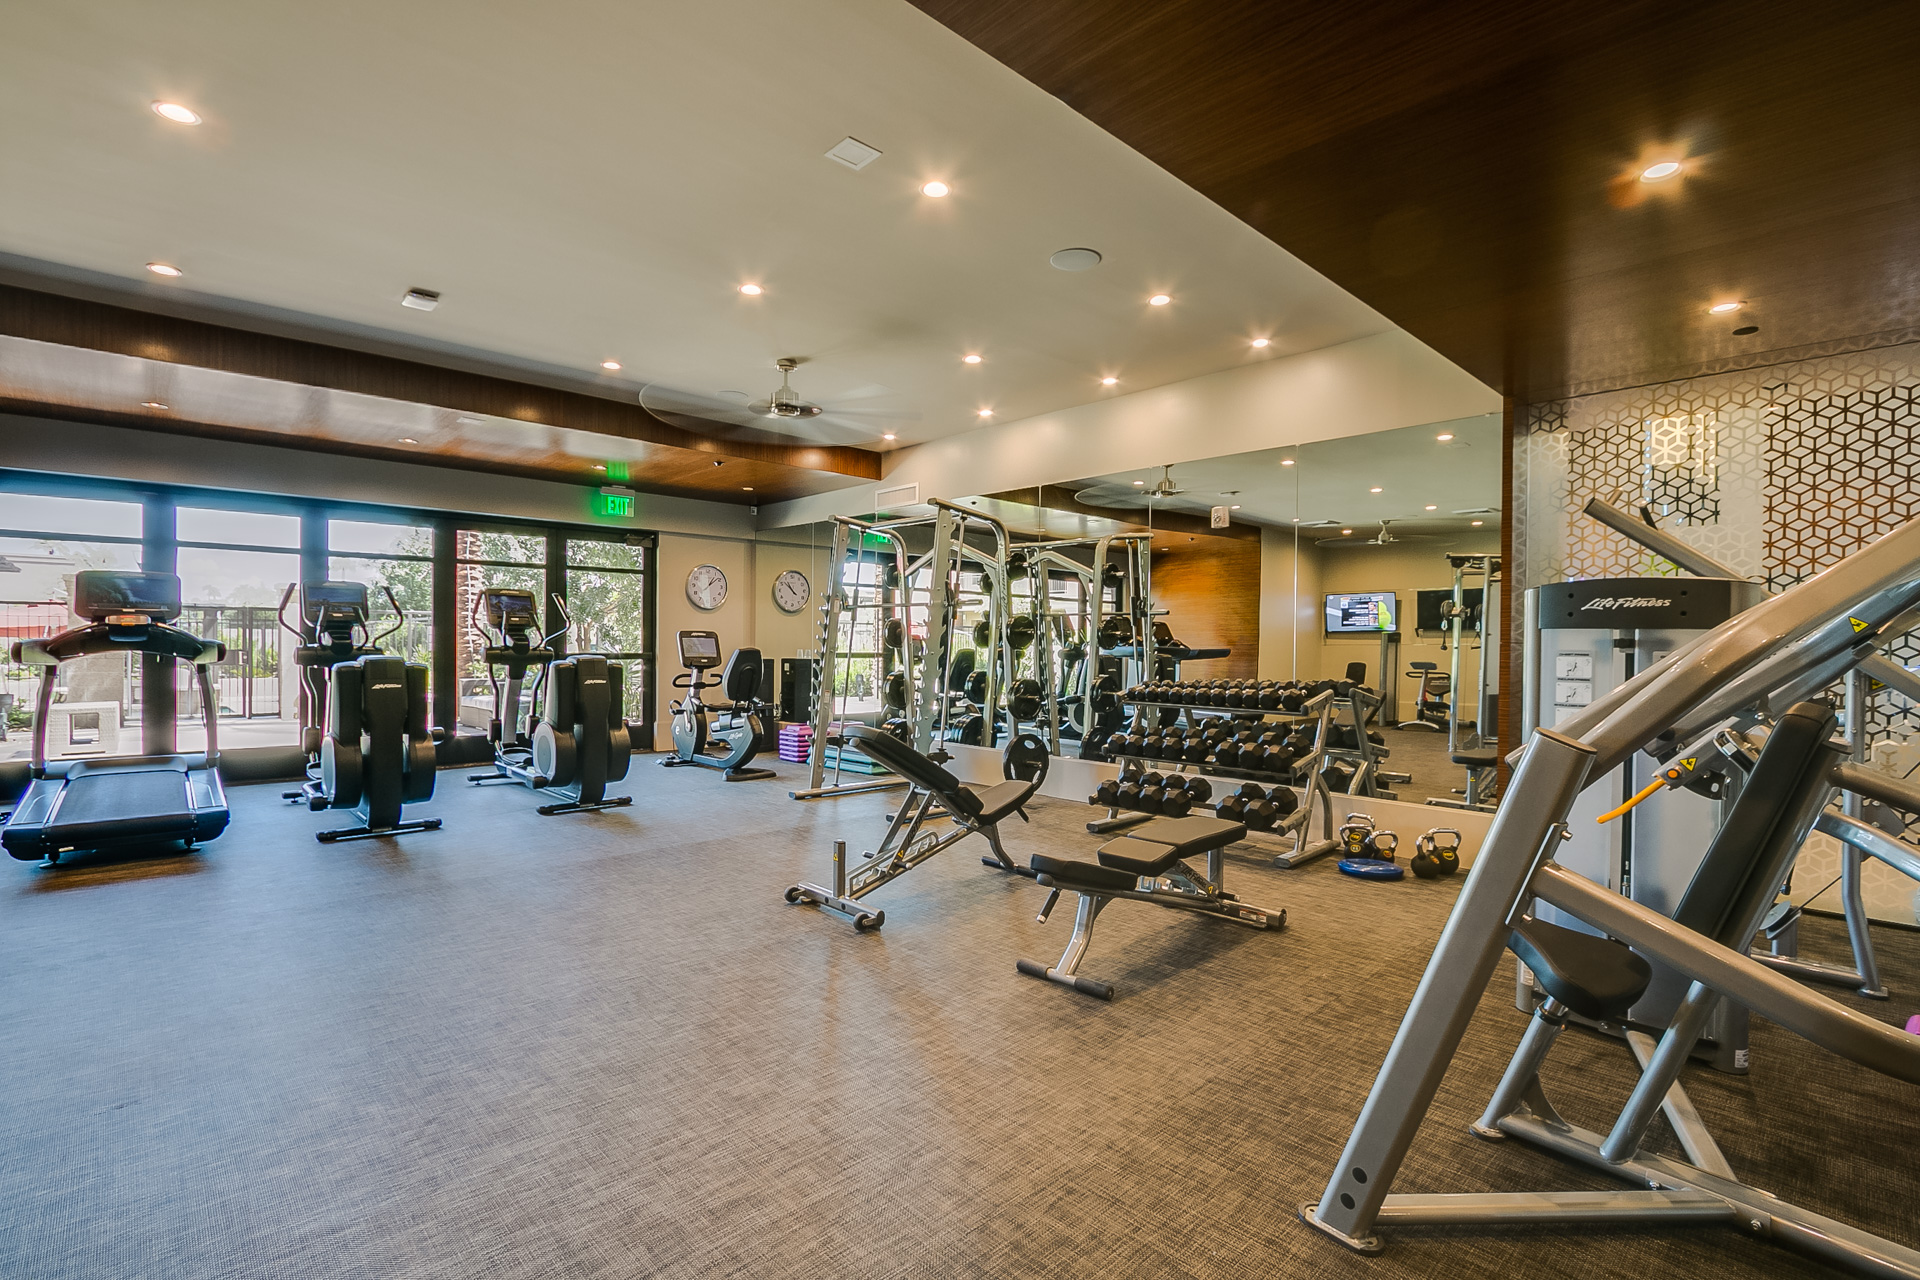 Enclave at borgata fitness center